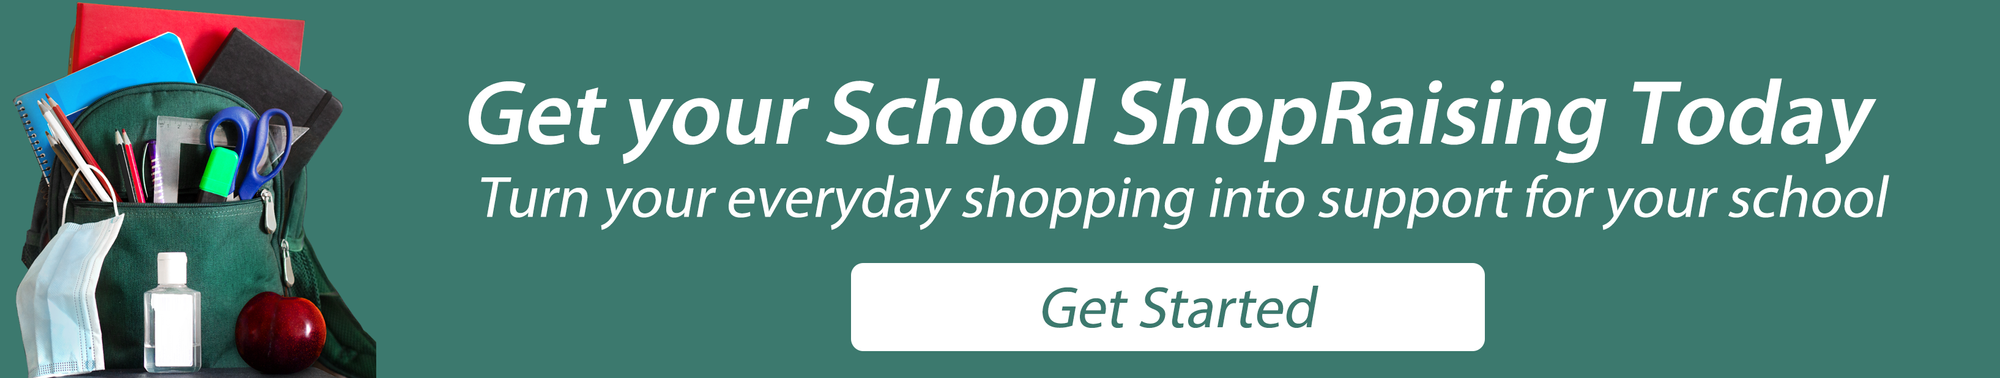 Signup your school for ShopRaise